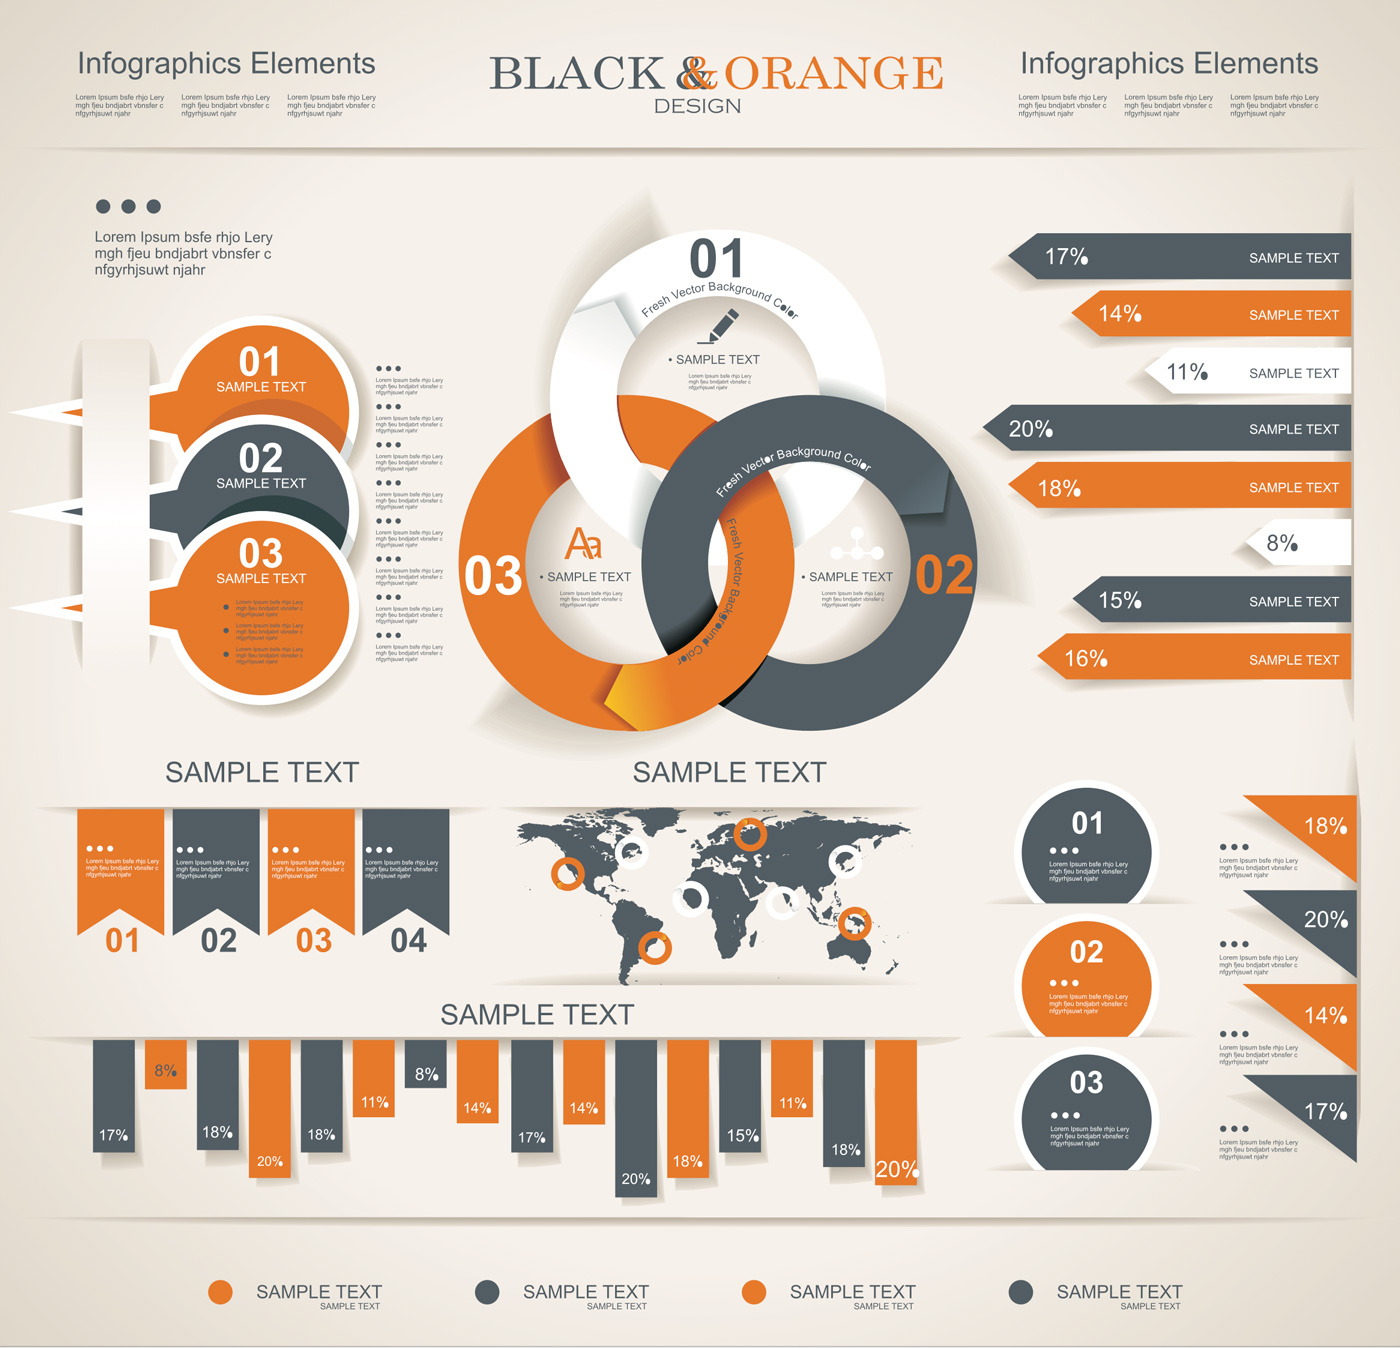 Black & Orange infographic vector art